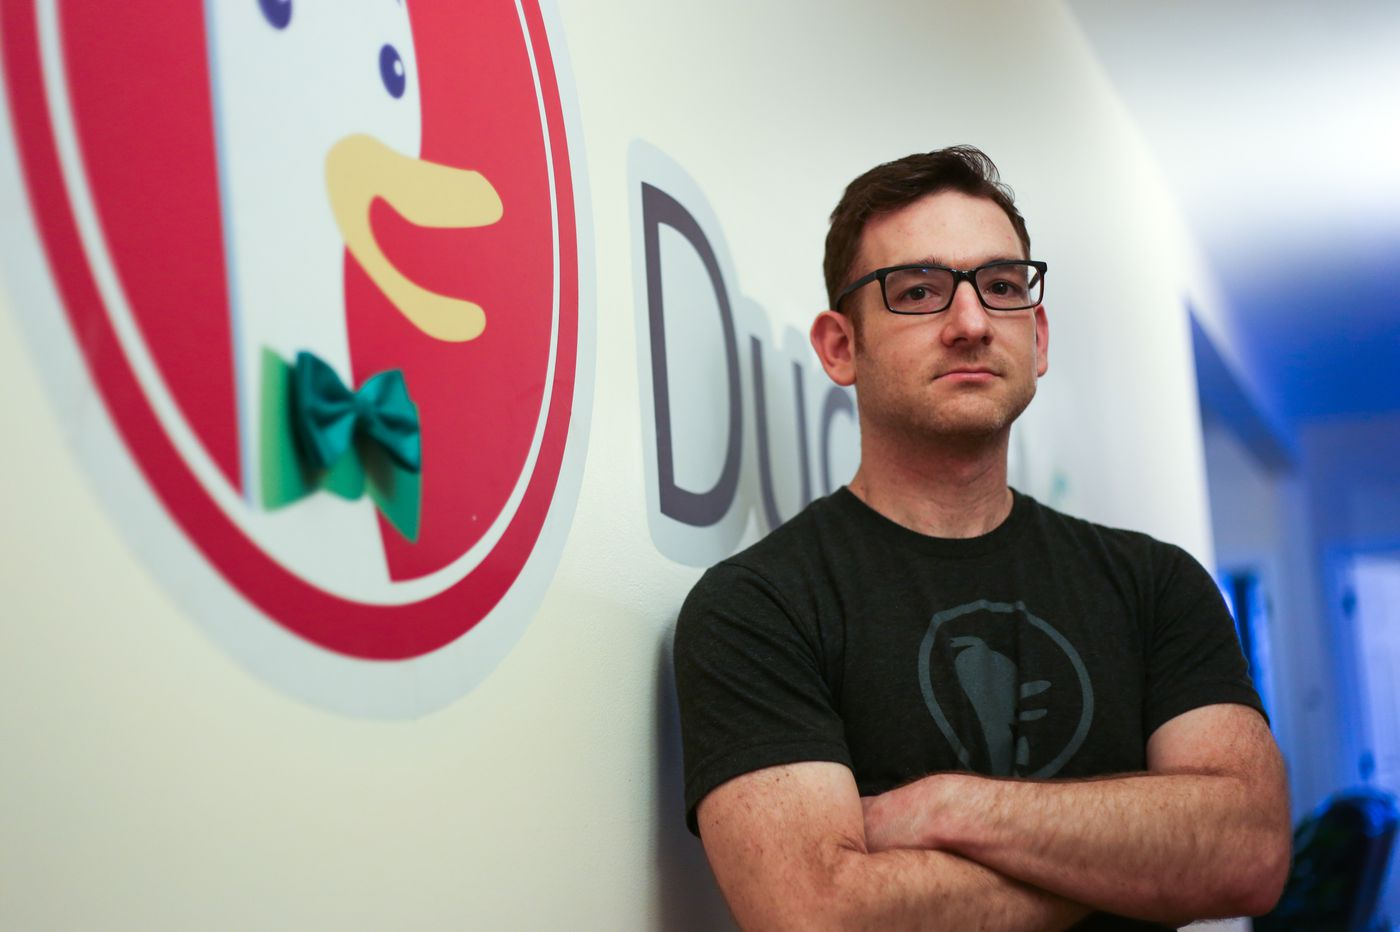 'I come to you from the future': DuckDuckGo founder tells Congress how U.S. would win by limiting 'invasive' Google, Facebook tracking